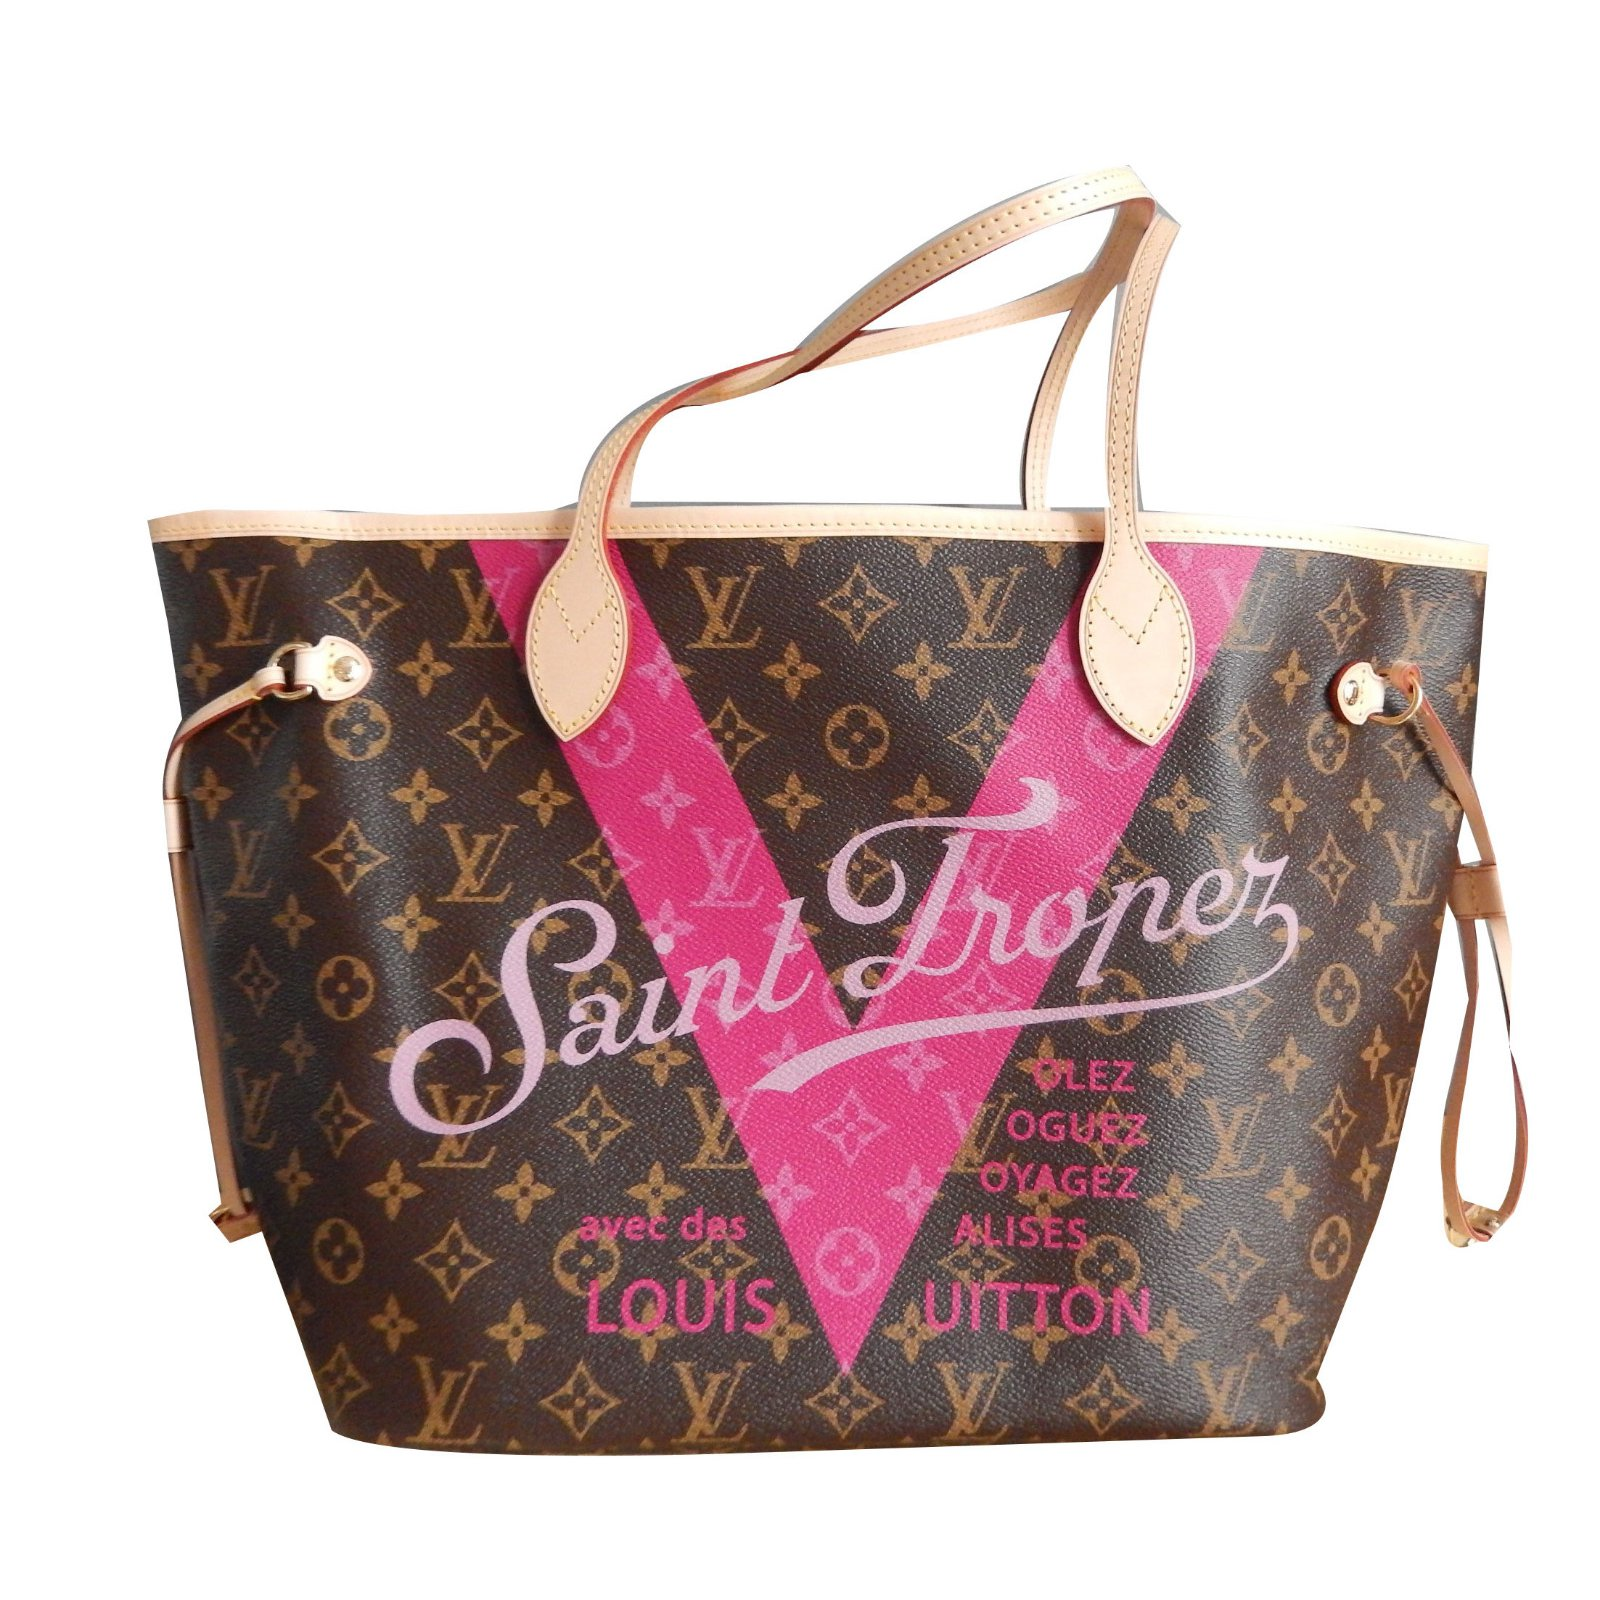 Authentic pre-owned louis vuitton limited edition 2009 collection.